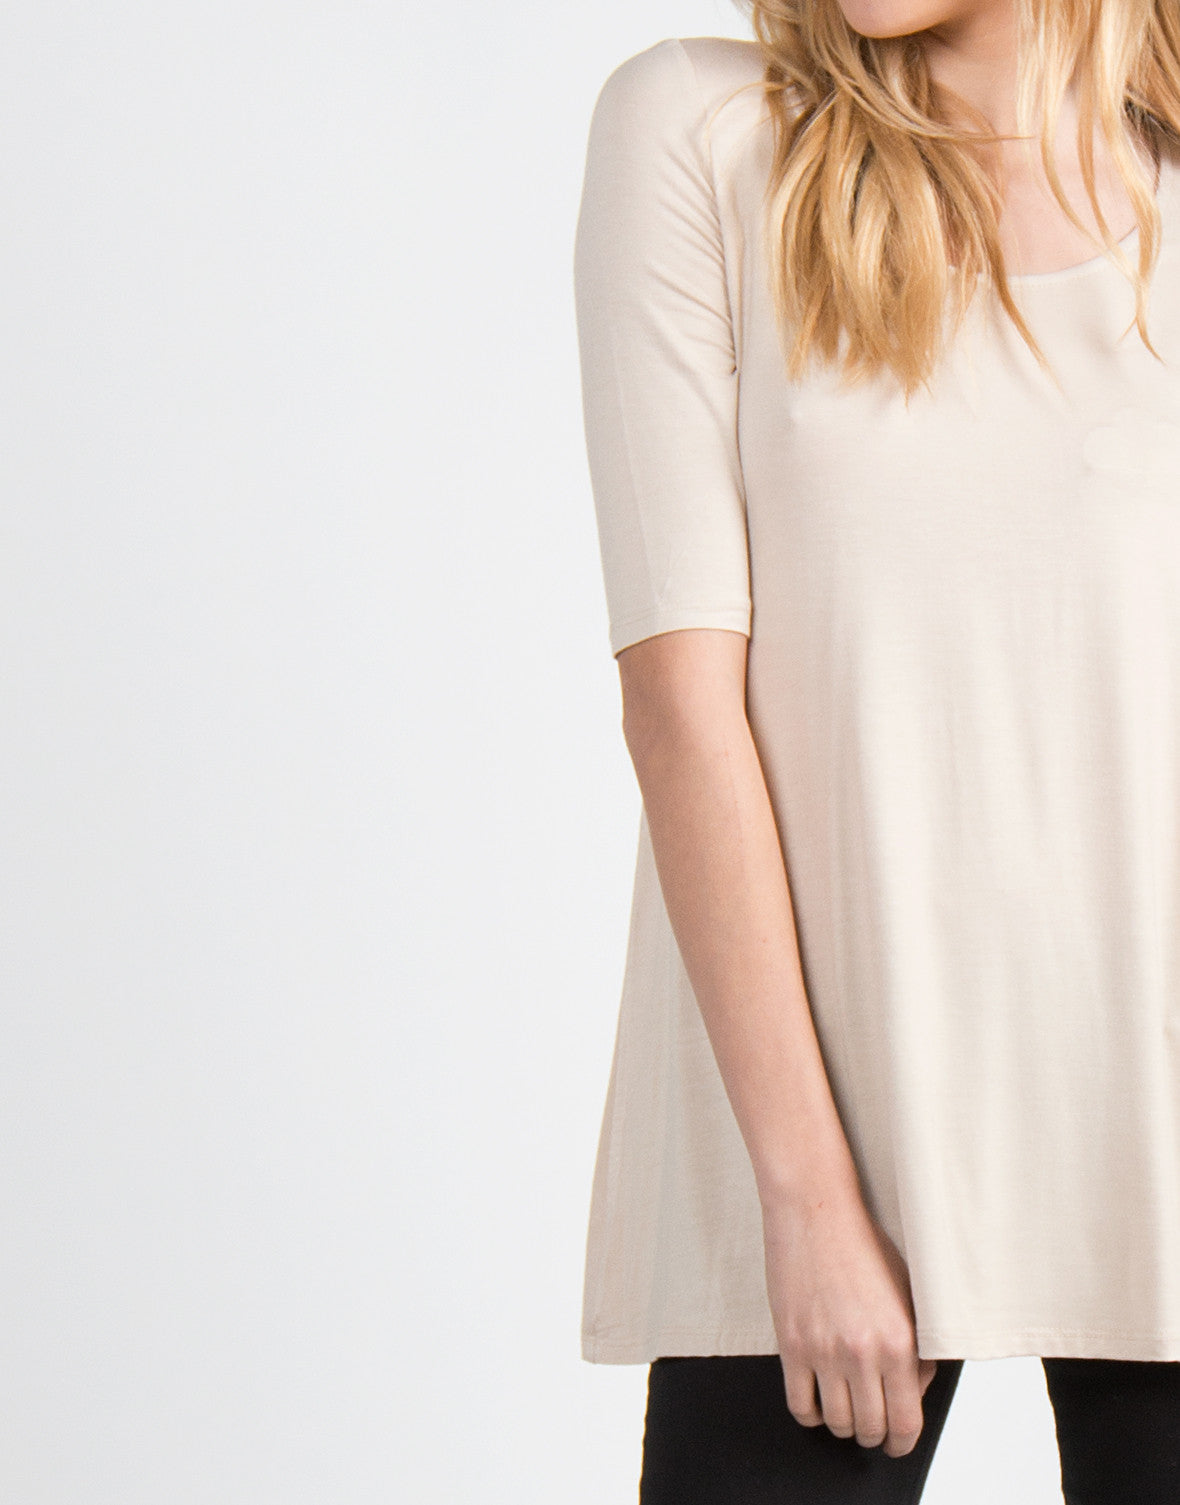 Basic 3/4 Sleeve Tunic Top - Taupe